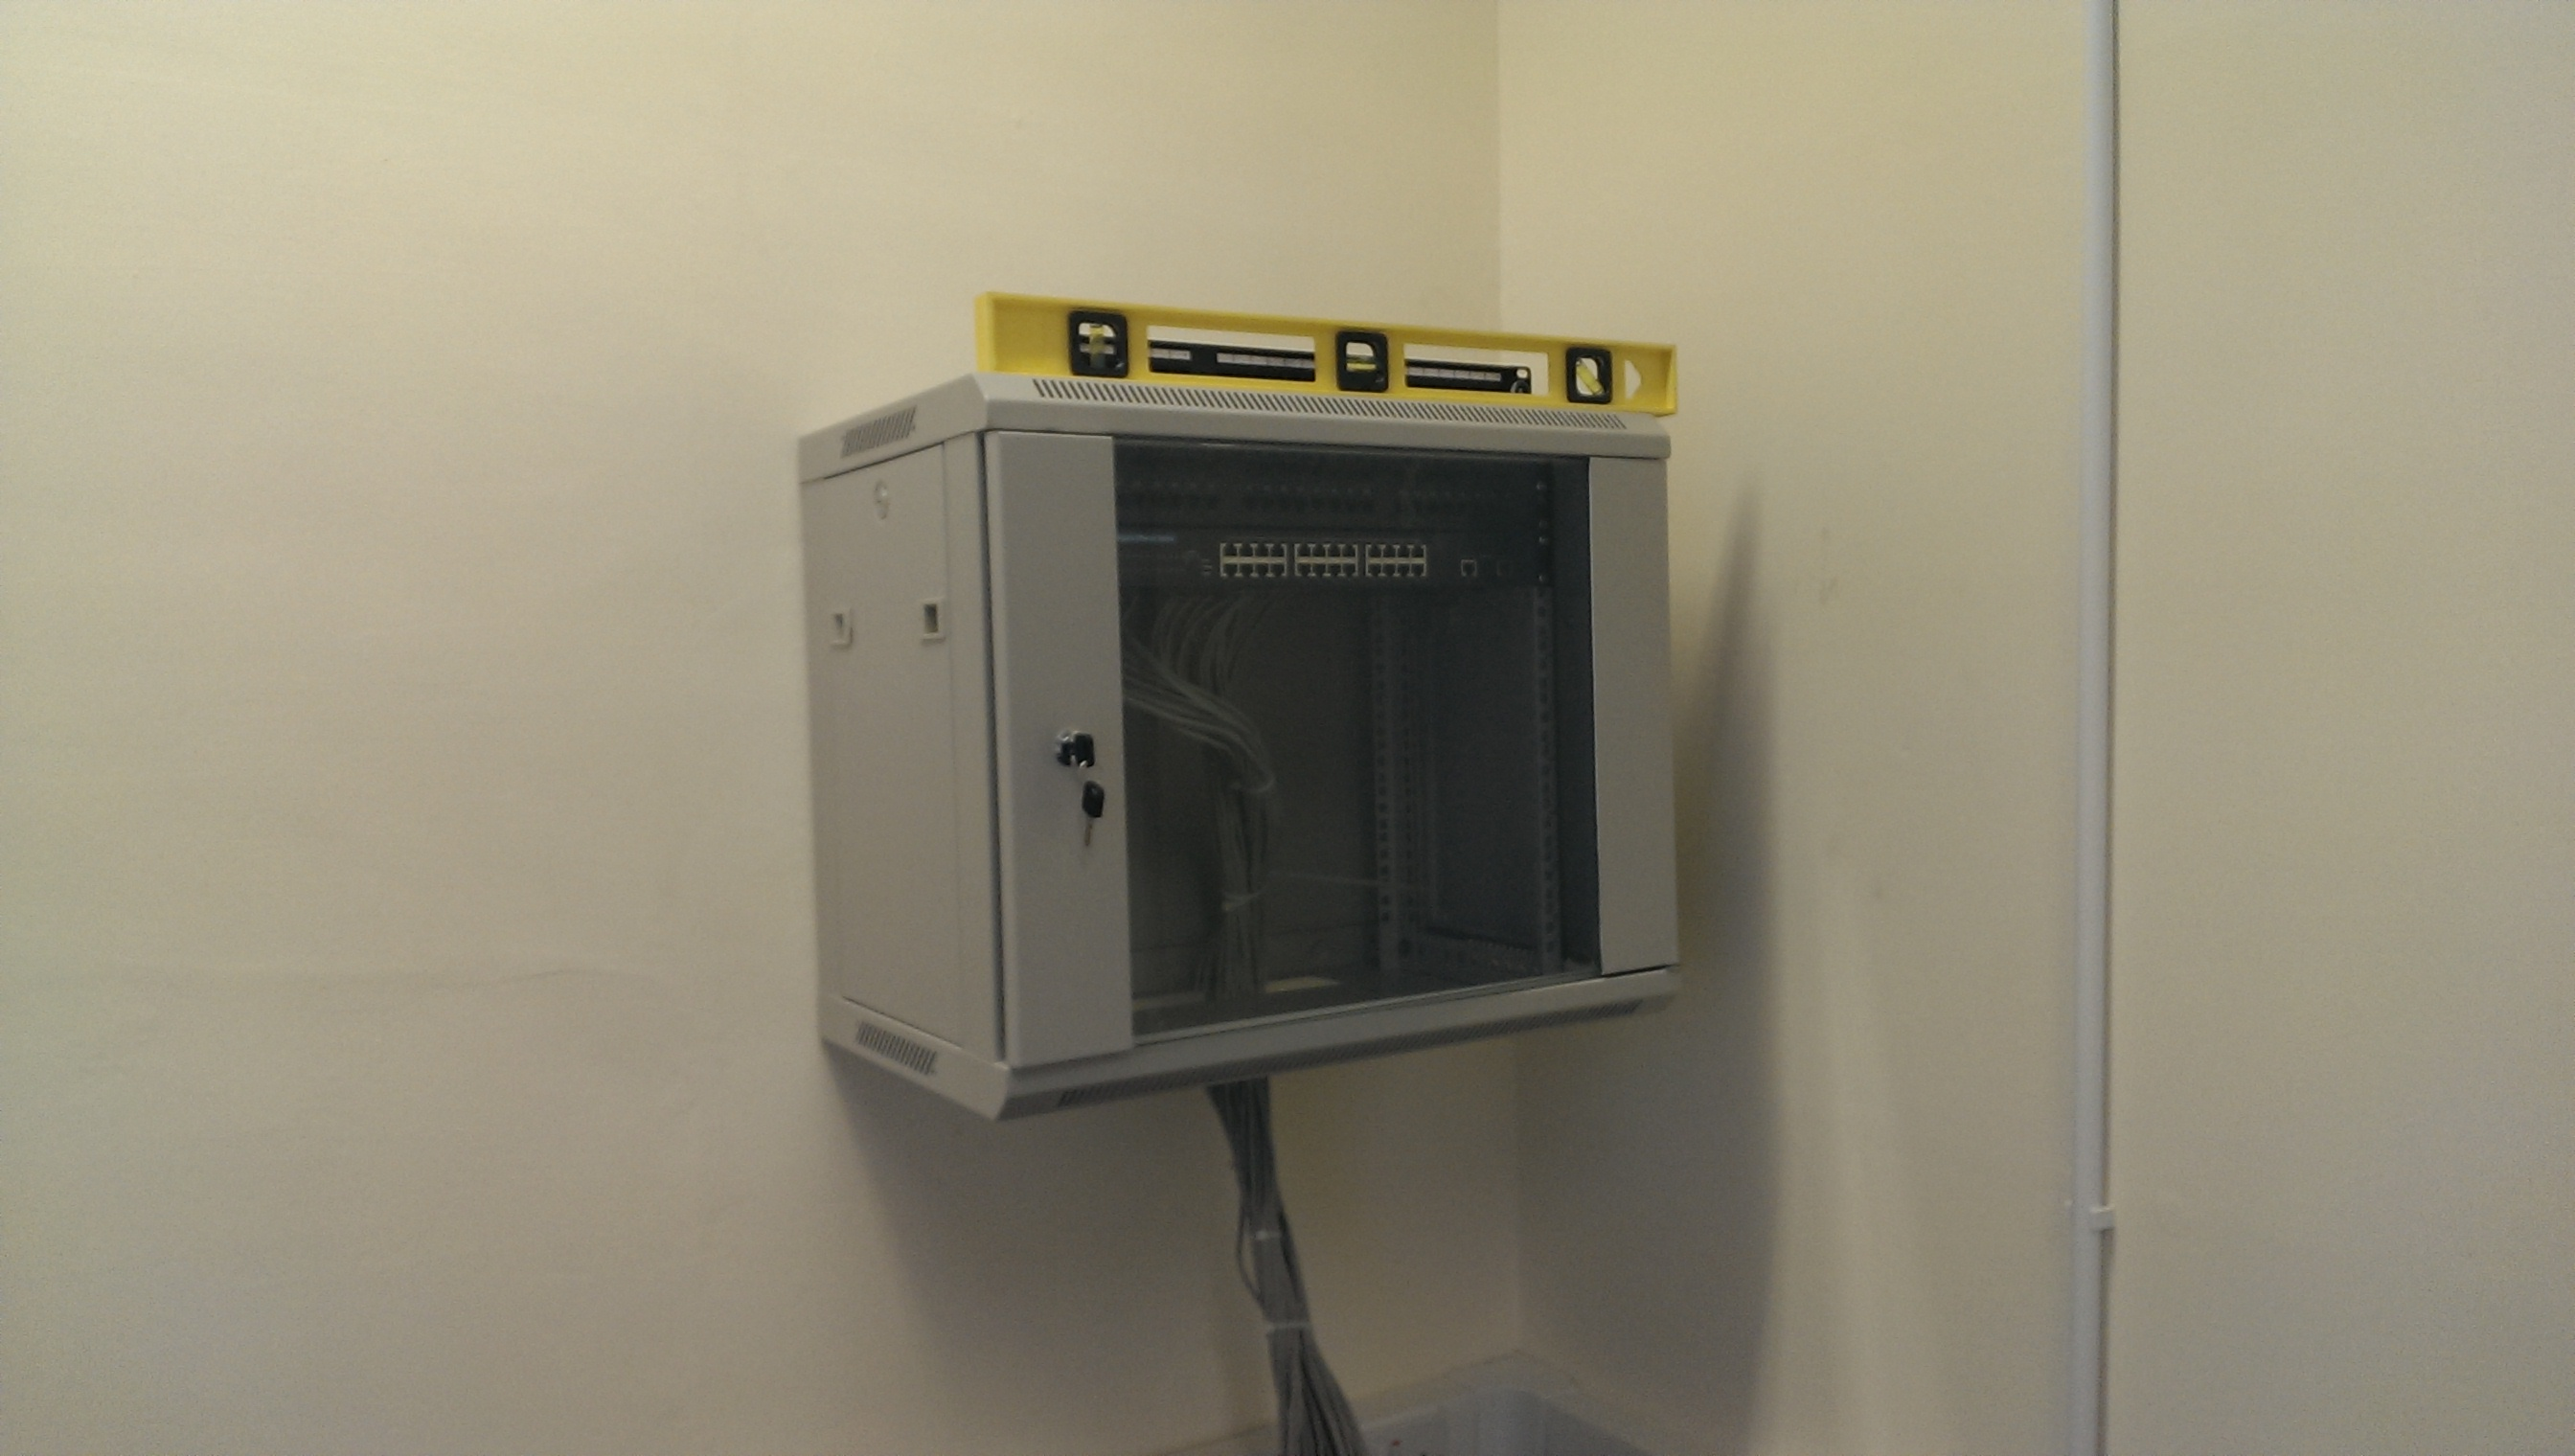 The auxillary server/network box